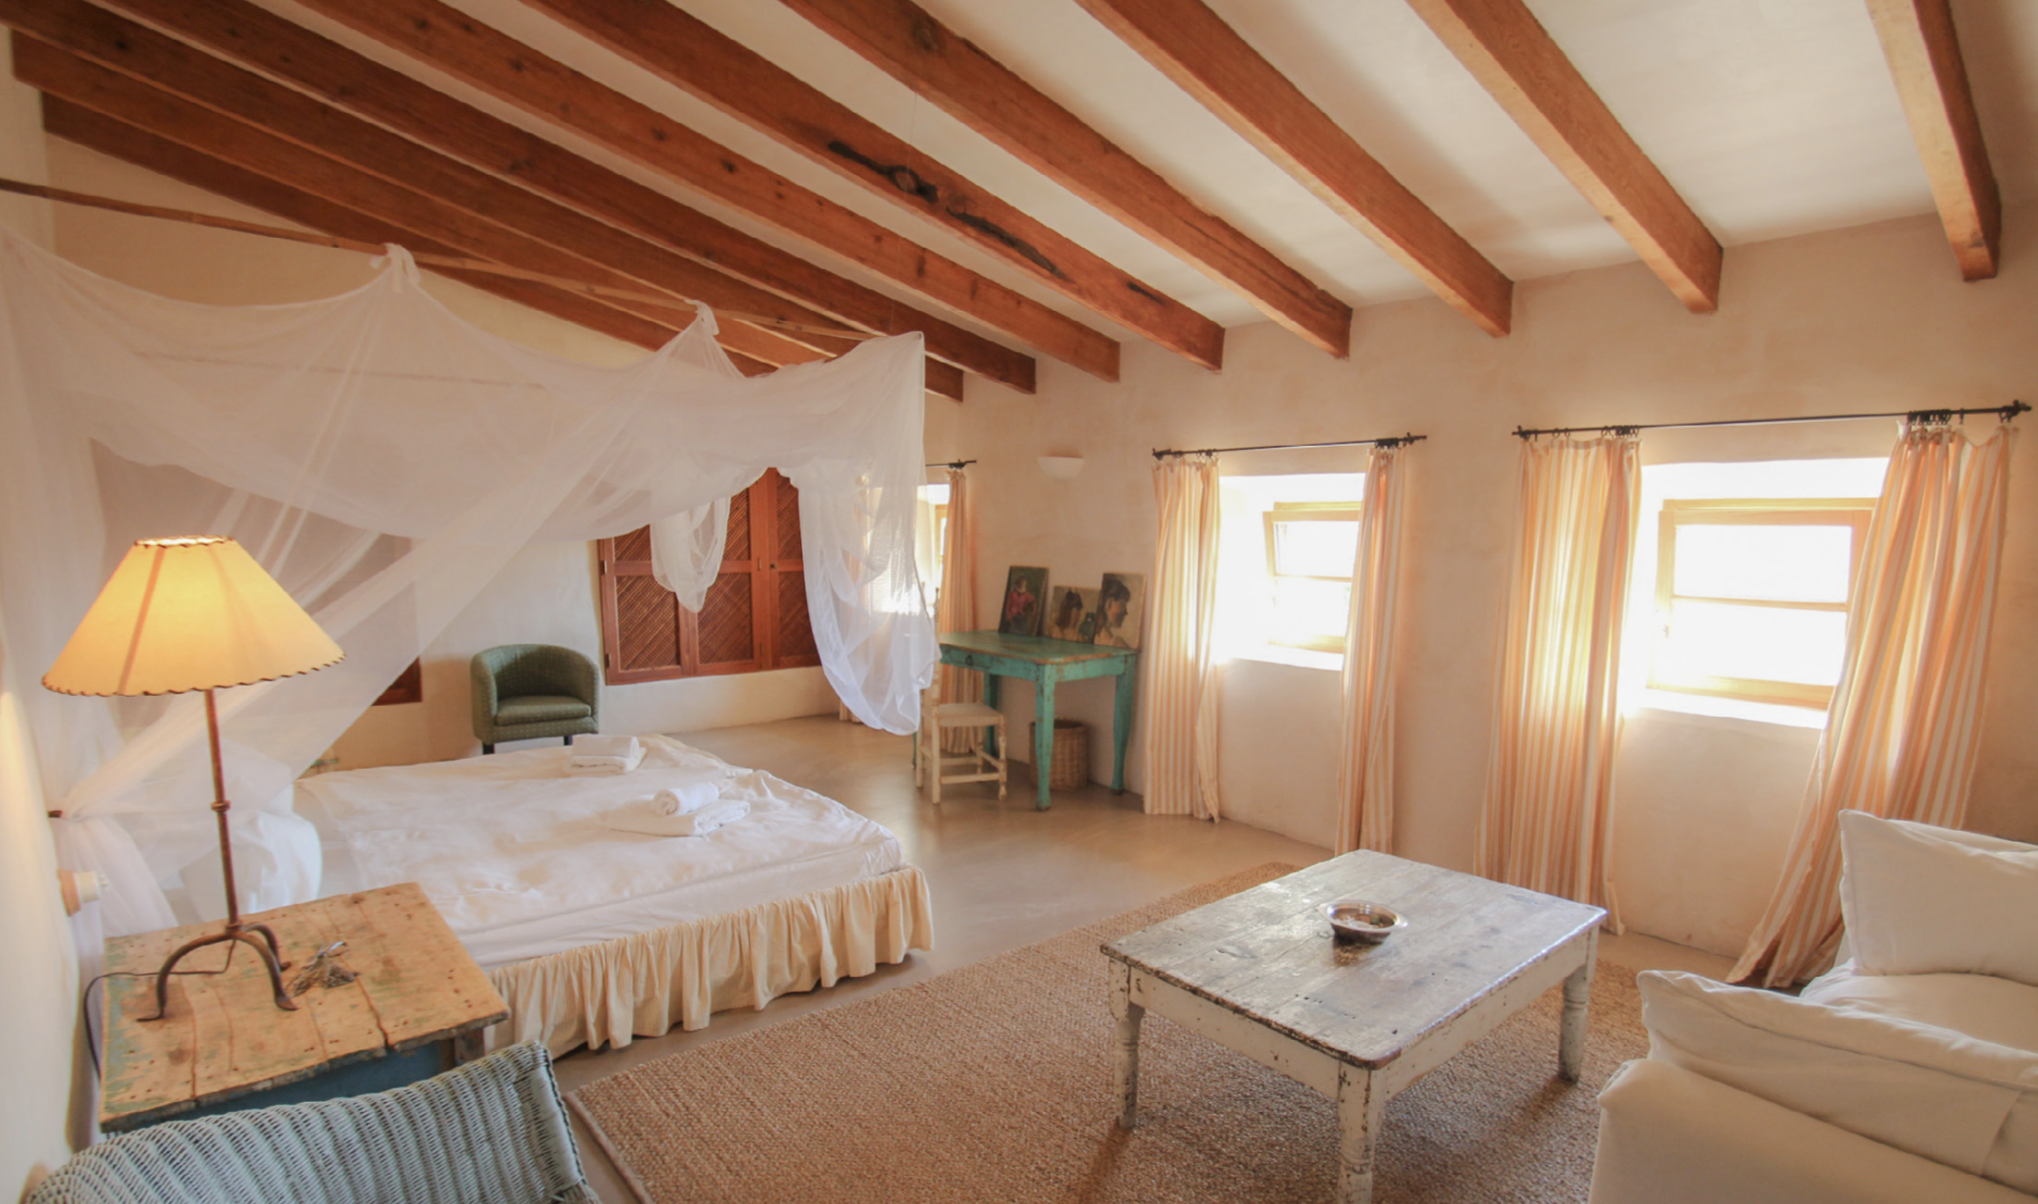 YELLOW EMPEROR Spacious double room  4 Day Programme 1300 € p.p. 7 Day Programme 2300 € p.p.